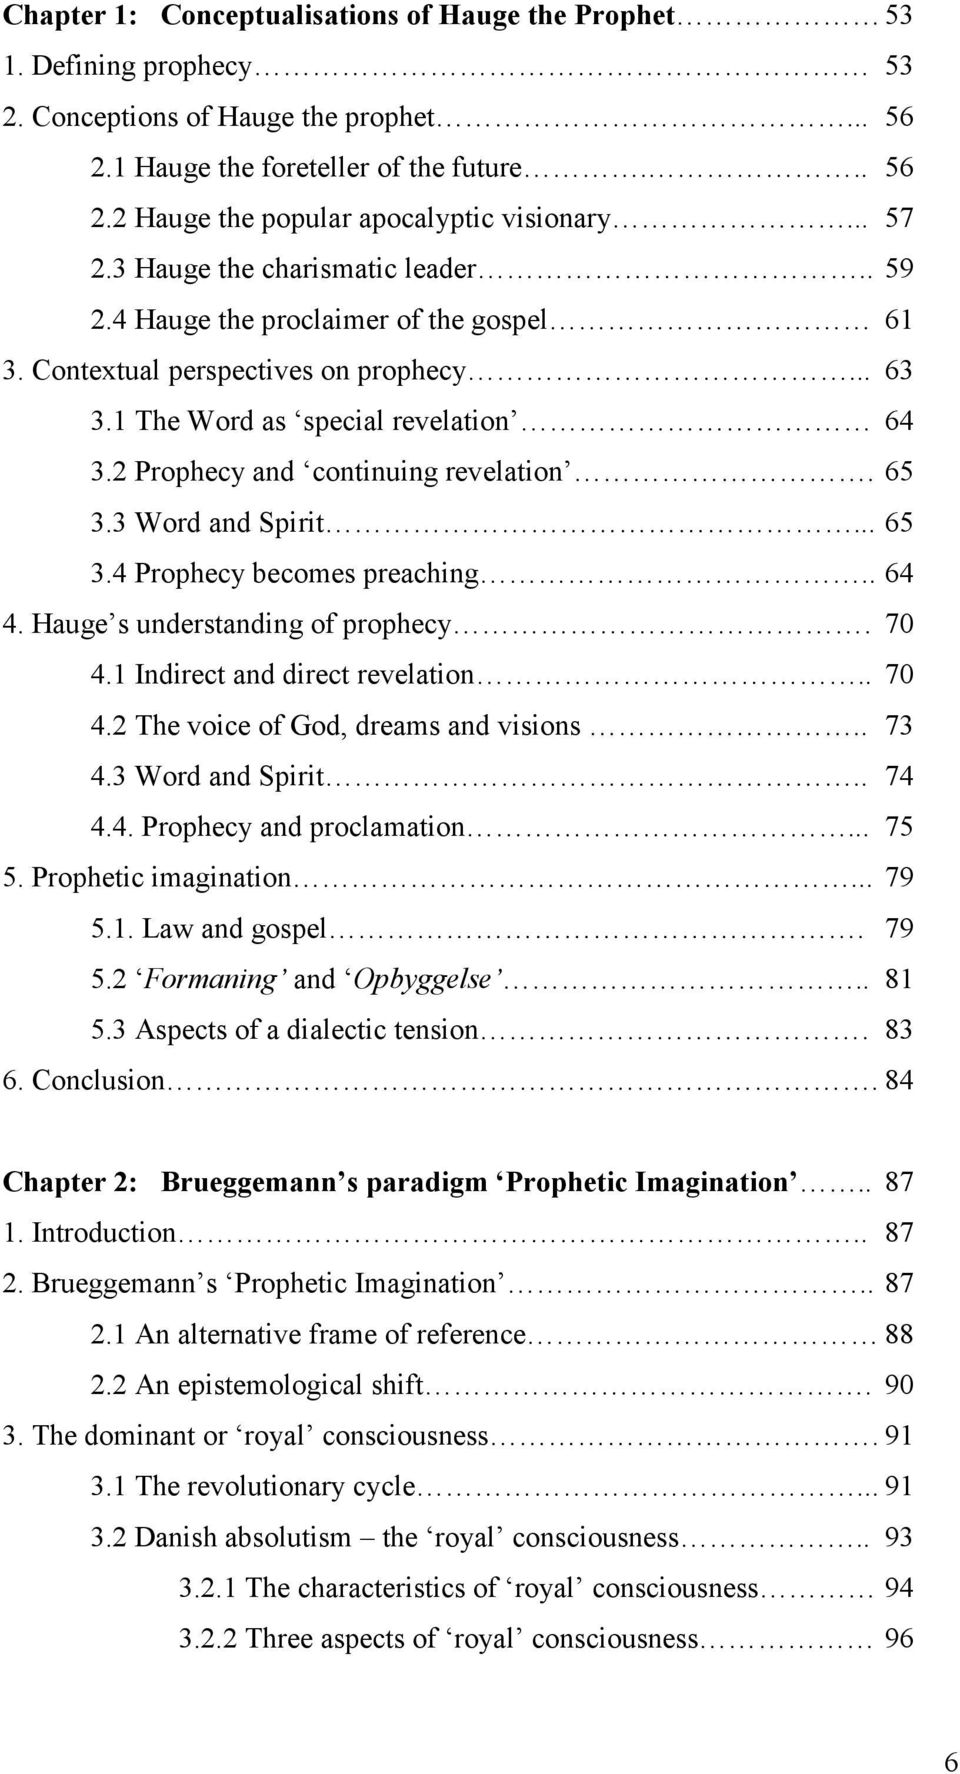 2 Prophecy and continuing revelation. 65 3.3 Word and Spirit... 65 3.4 Prophecy becomes preaching.. 64 4. Hauge s understanding of prophecy. 70 4.1 Indirect and direct revelation.. 70 4.2 The voice of God, dreams and visions.